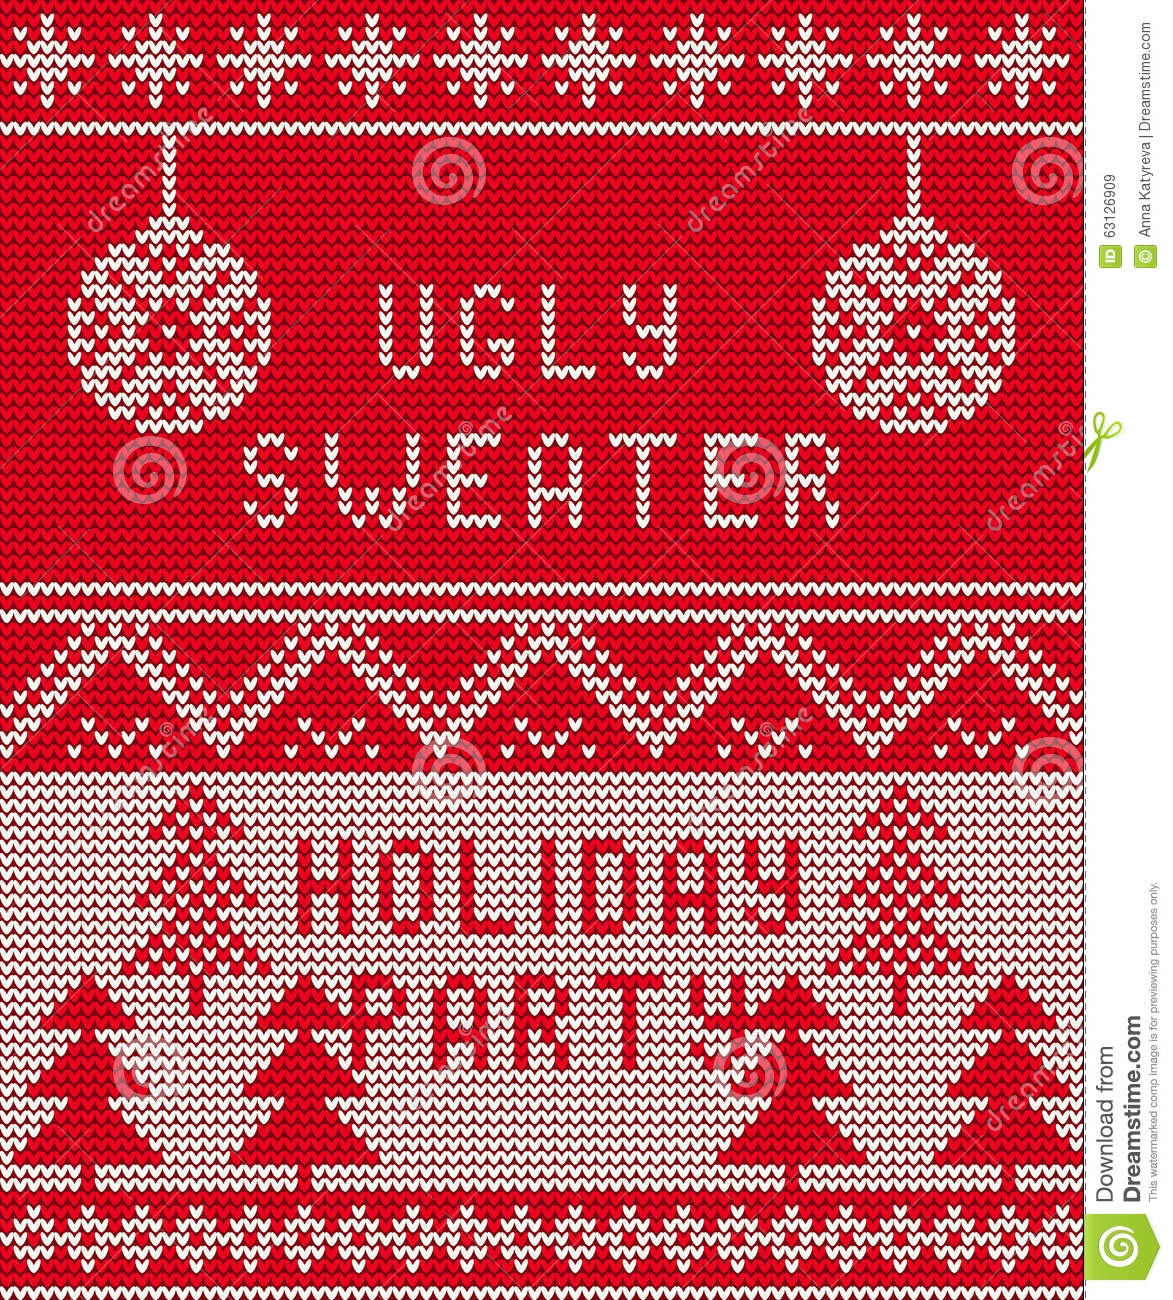 Christmas Sweater Background.Ugly Sweater Background 1 Stock Vector Illustration Of